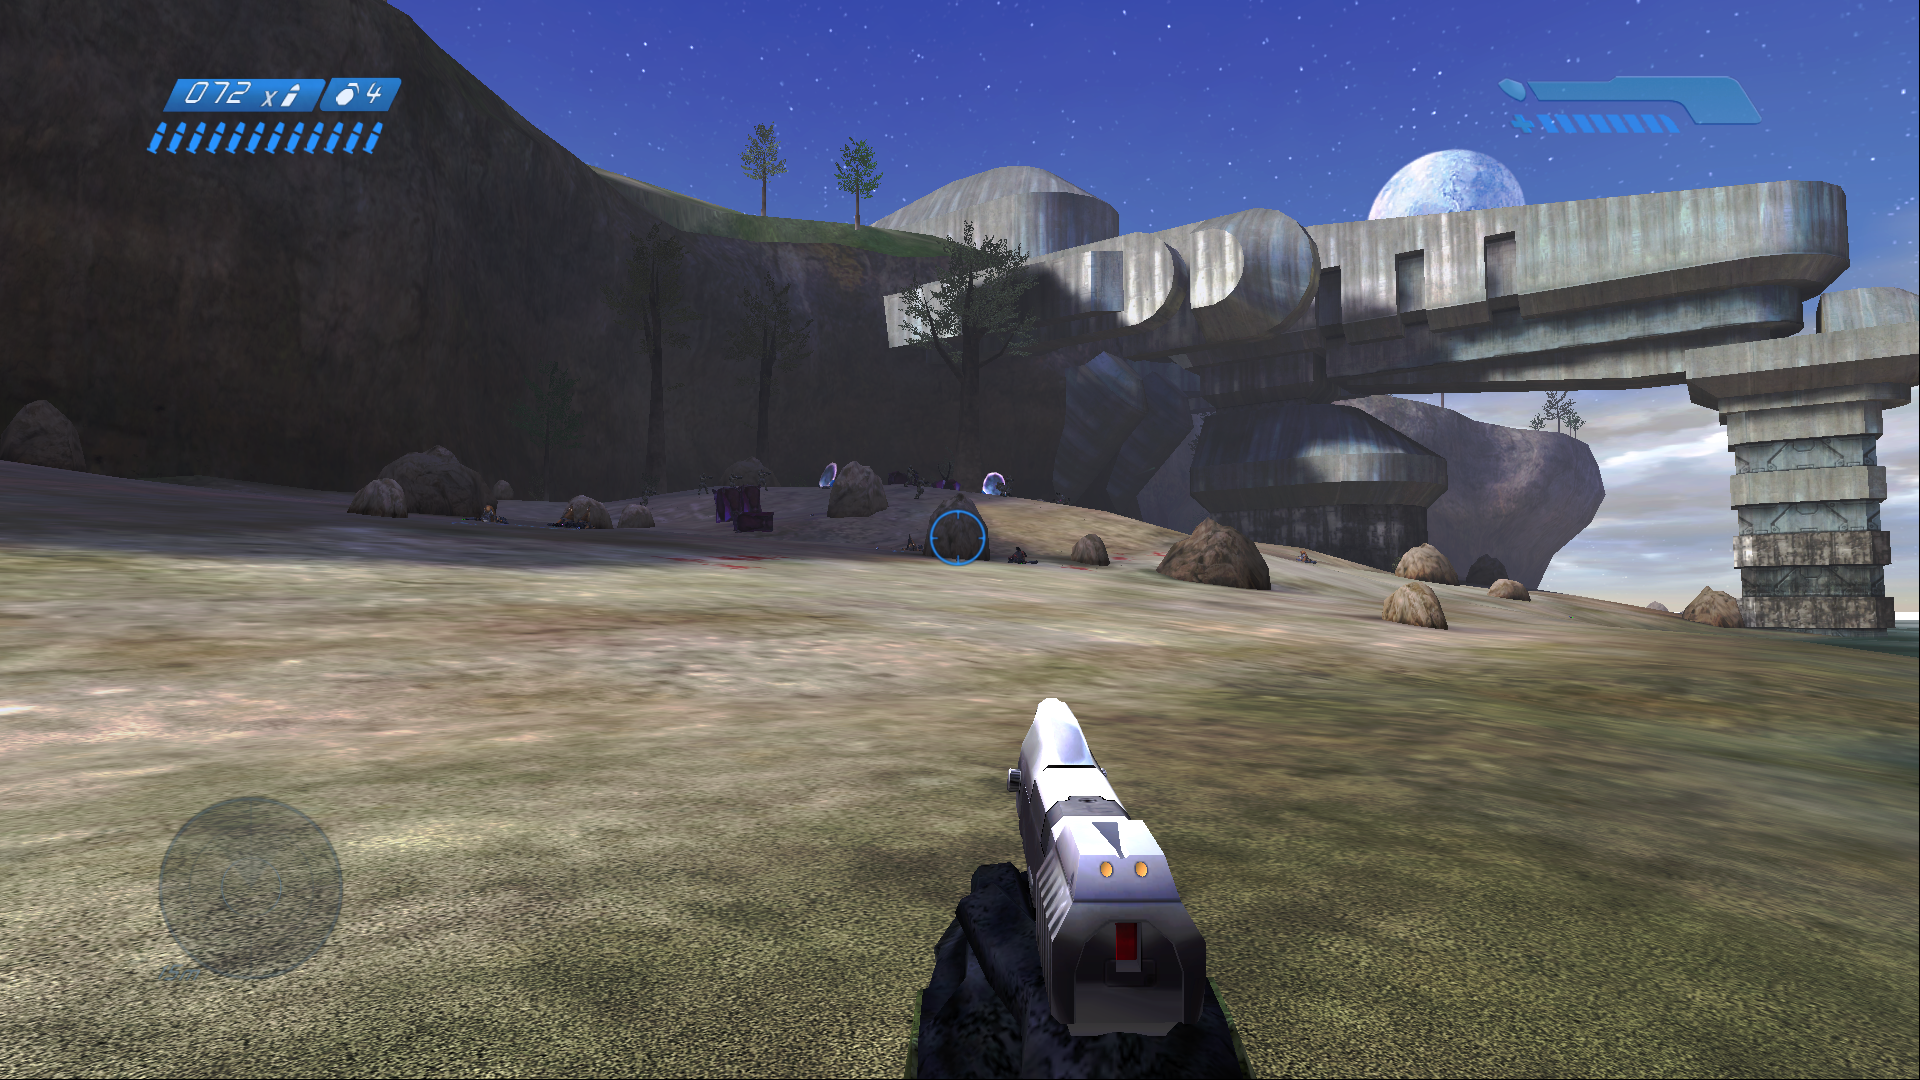 The Making of Halo: How Combat Evolved from Blam!— Part 1